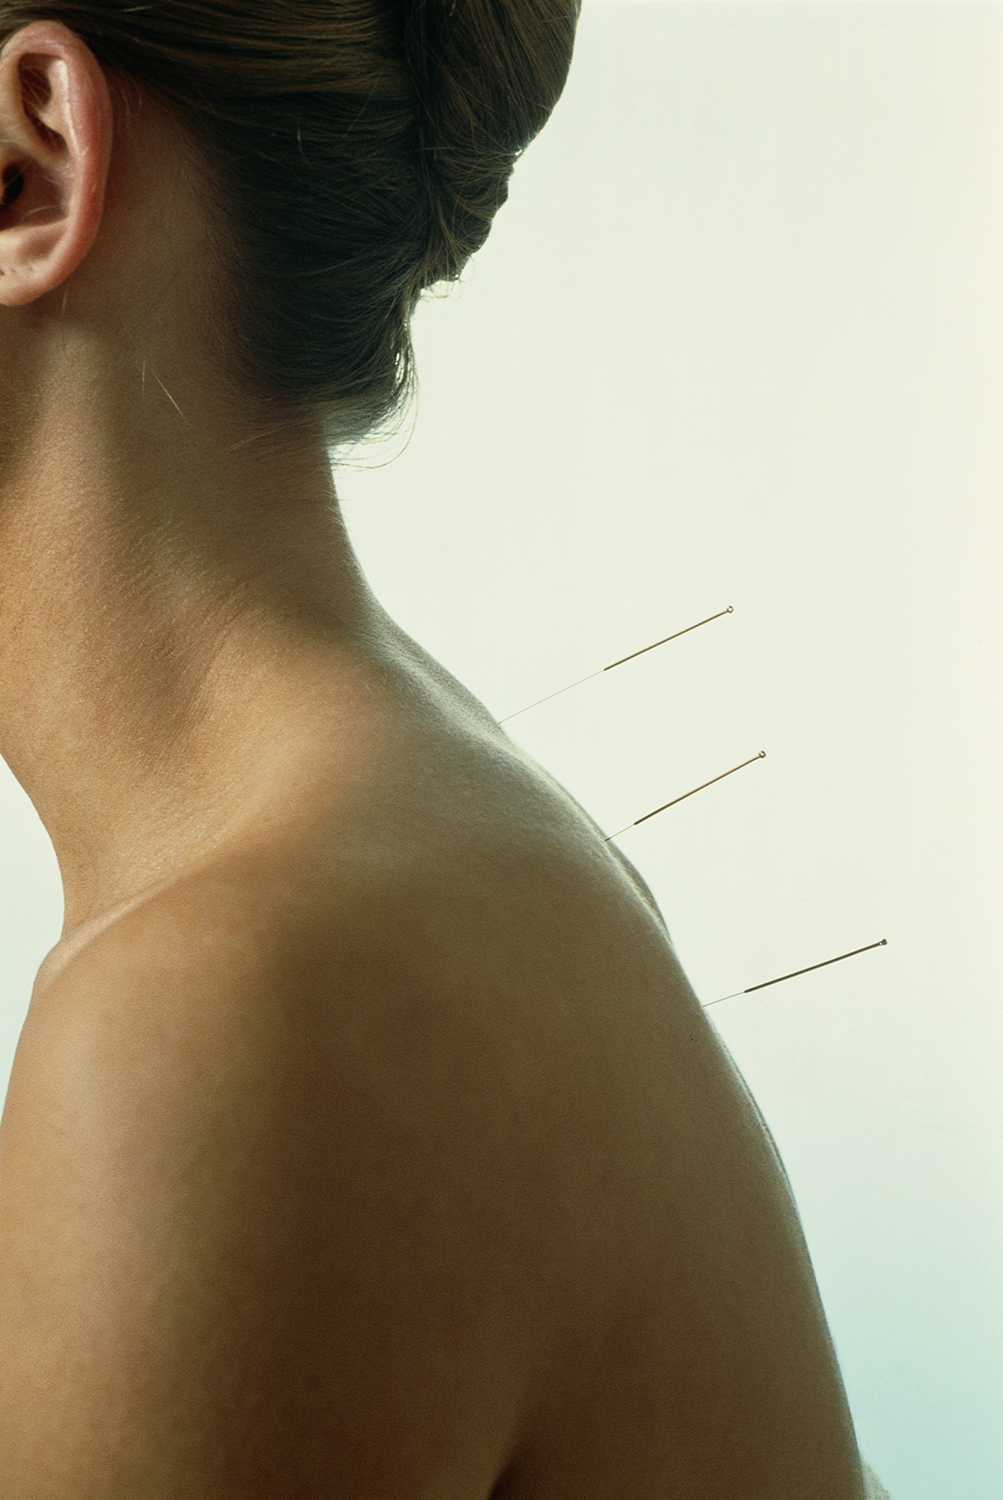 acupuncture-woman